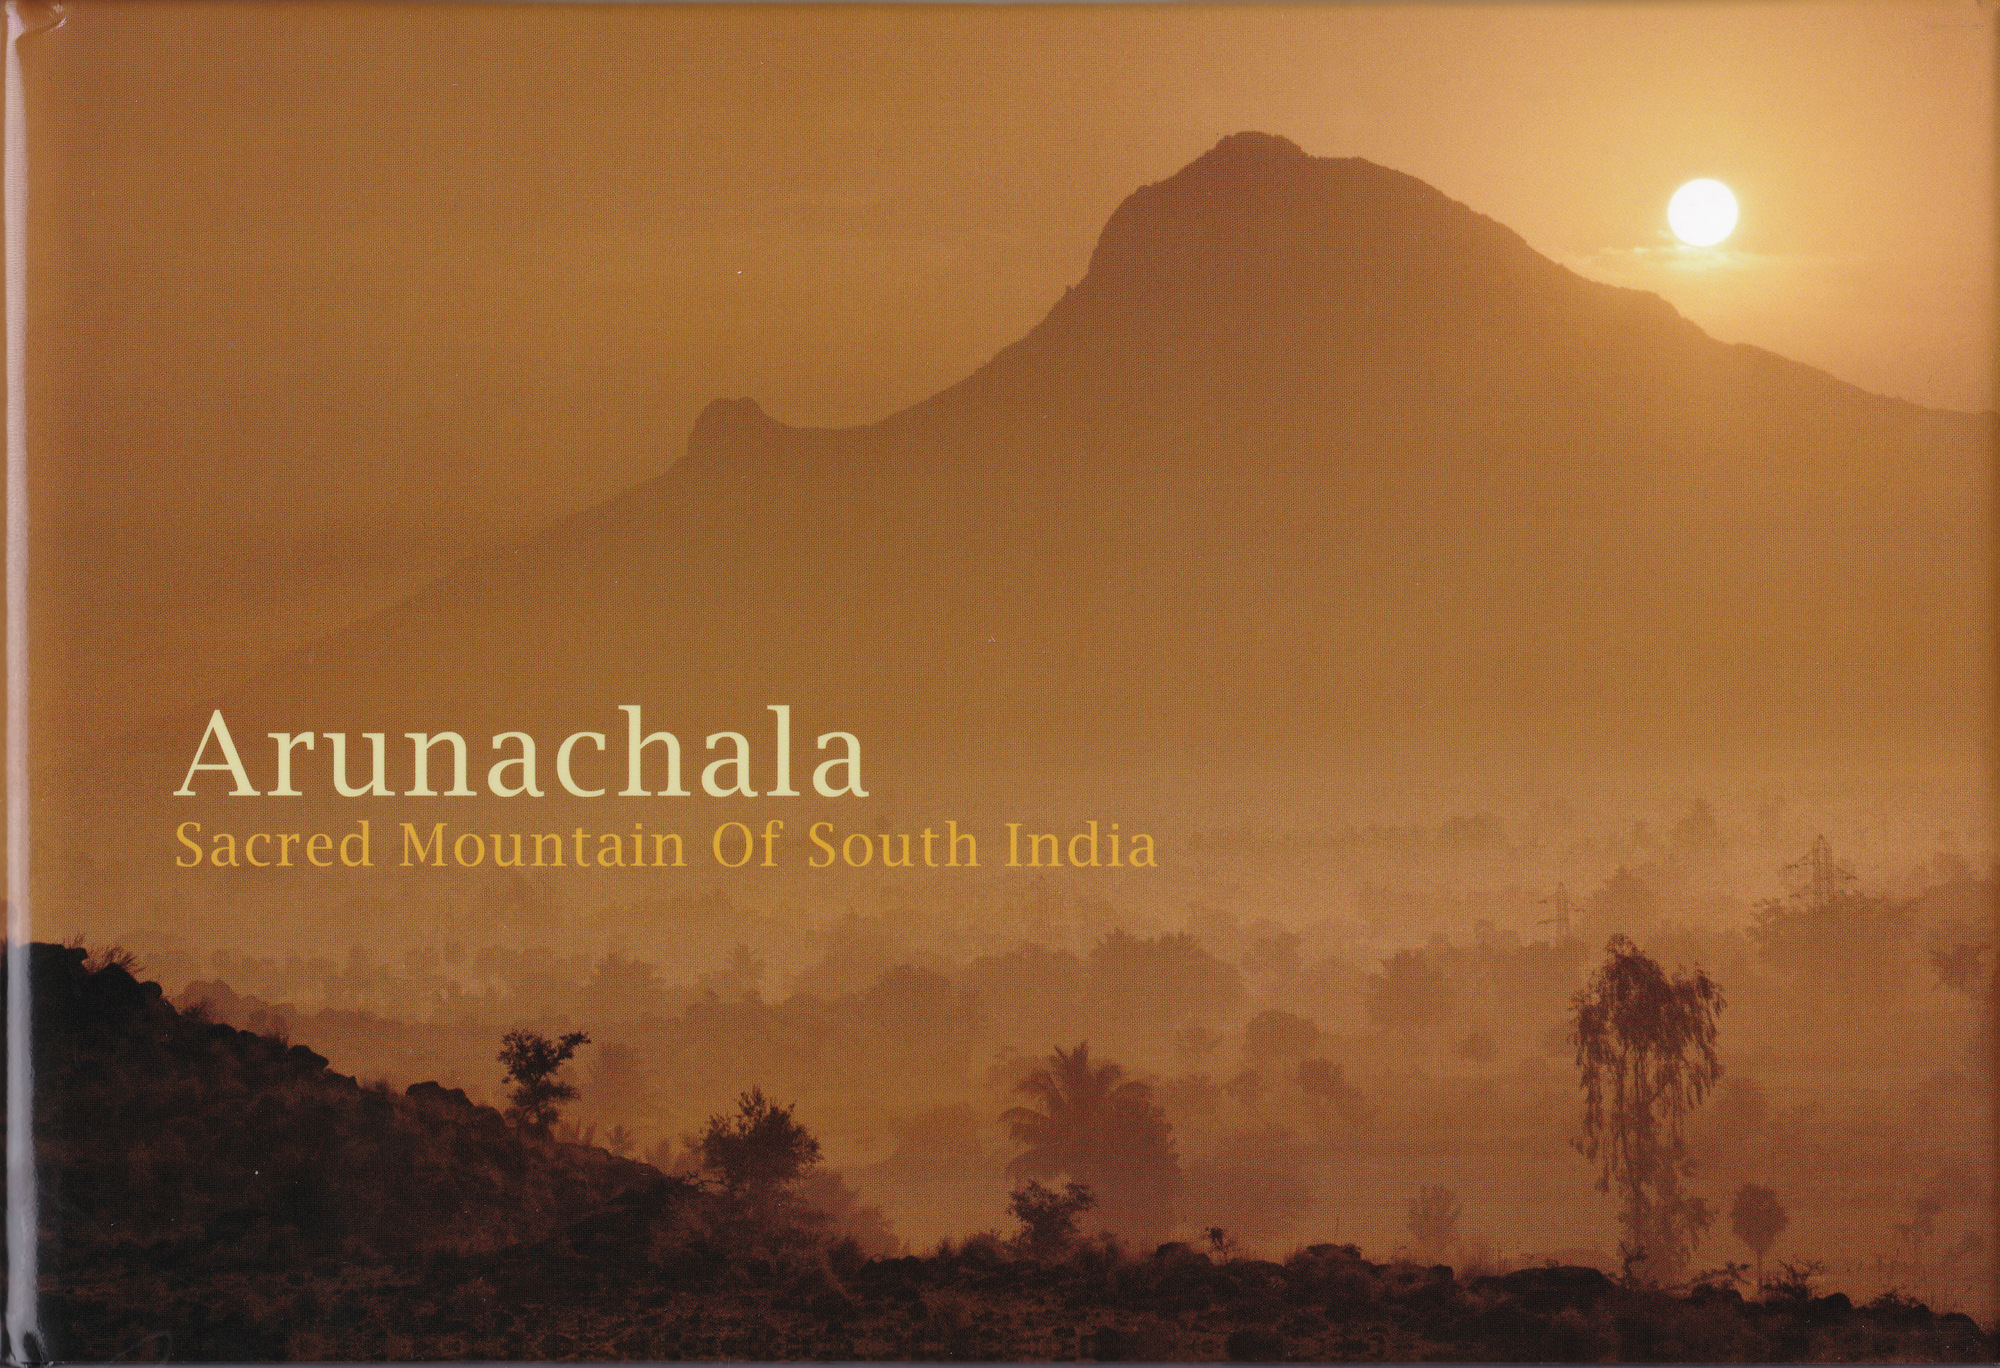 Arunachala Sacred Mountain of South India